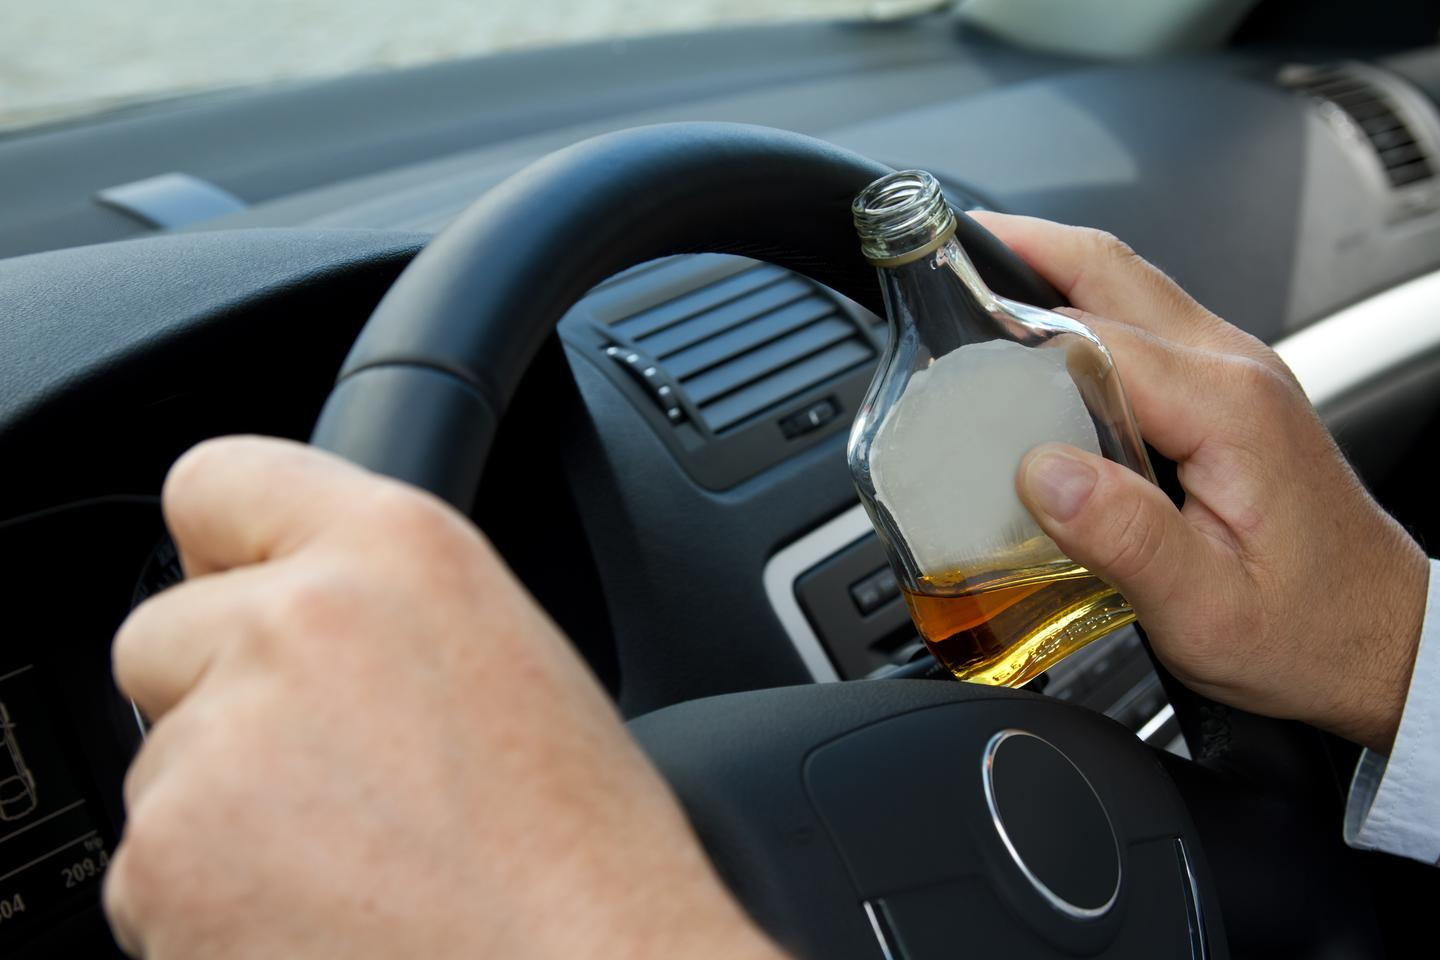 Scientists have used lasers to gauge the alcohol vapor content of the air in moving cars (Photo: Shutterstock)